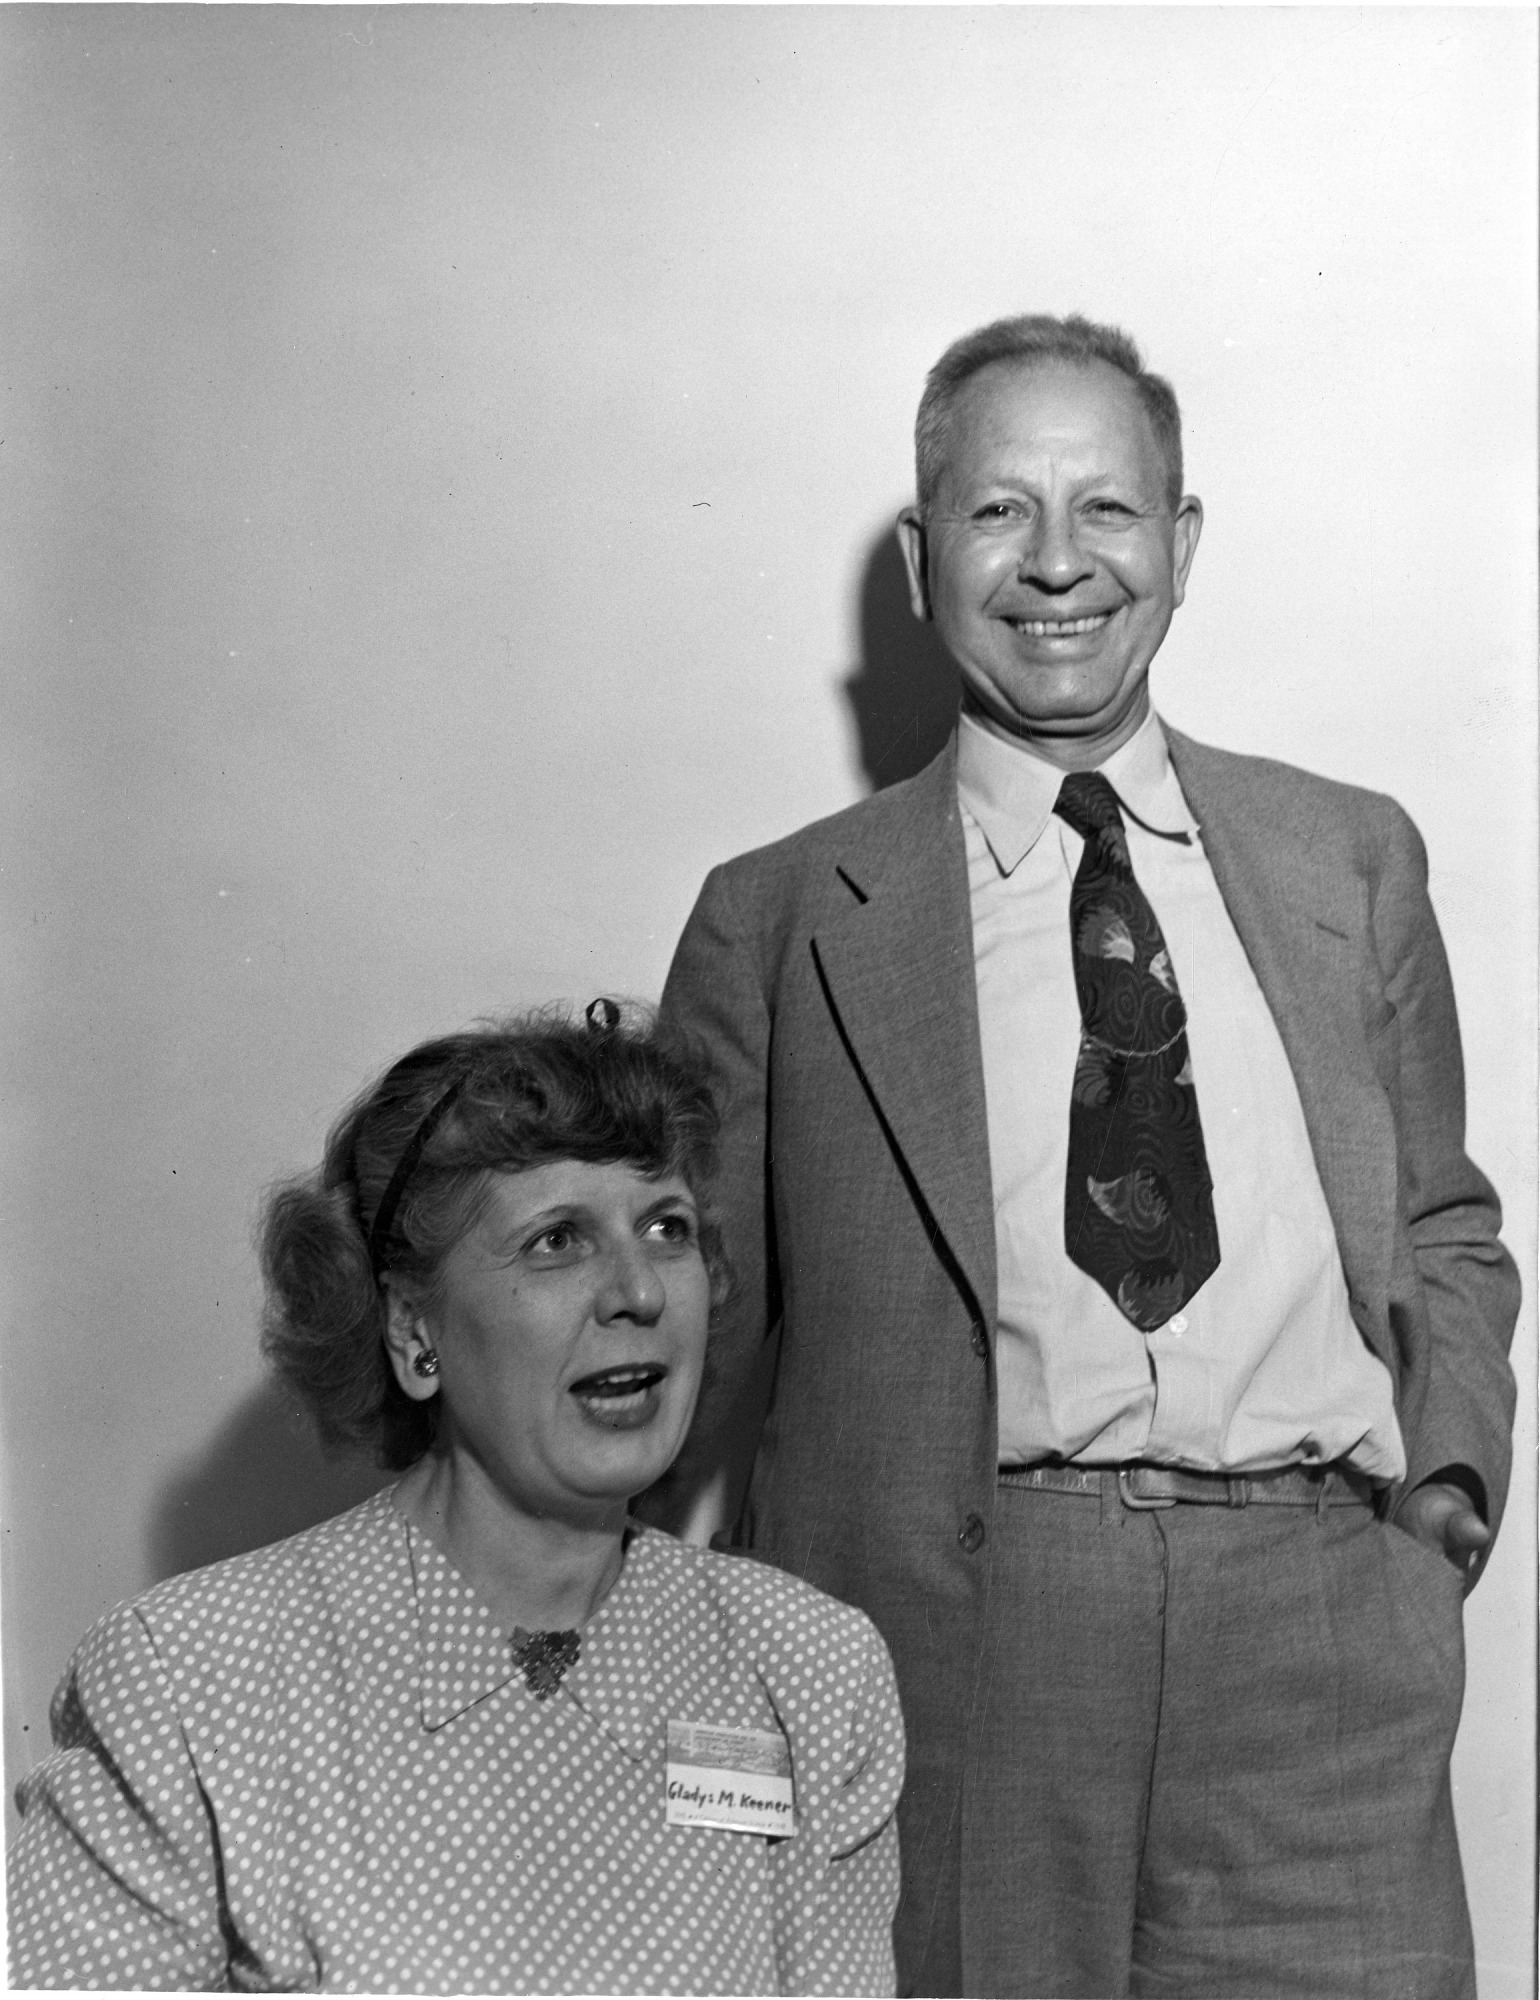 left to right: Gladys McLaughlin Schramm Keener (ca. 1897-1961) and Elvin Charles Stakman (1885-1979)